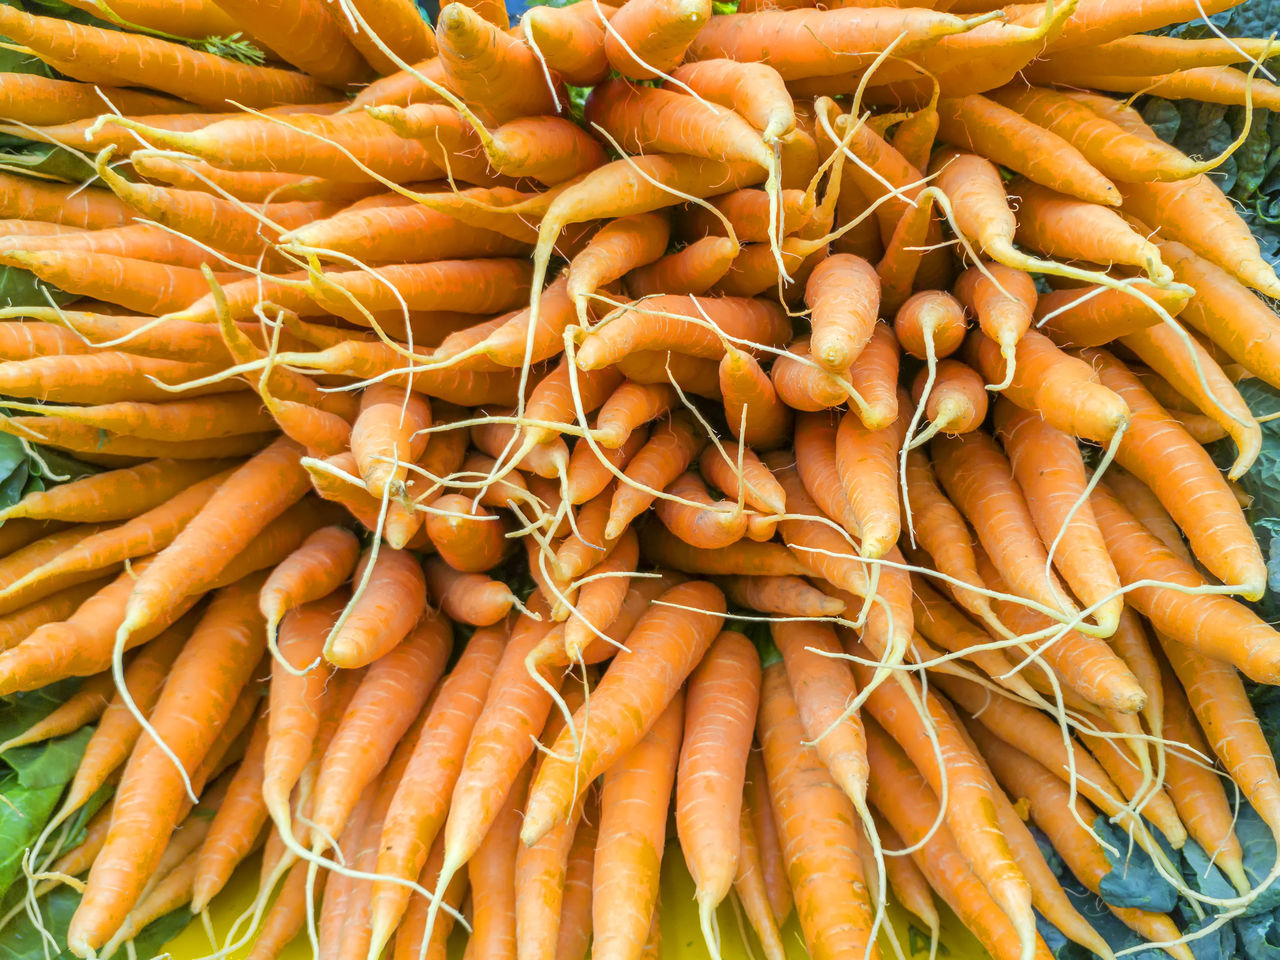 vegetable, food and drink, abundance, for sale, market, retail, large group of objects, full frame, food, no people, root, day, healthy eating, backgrounds, close-up, freshness, outdoors